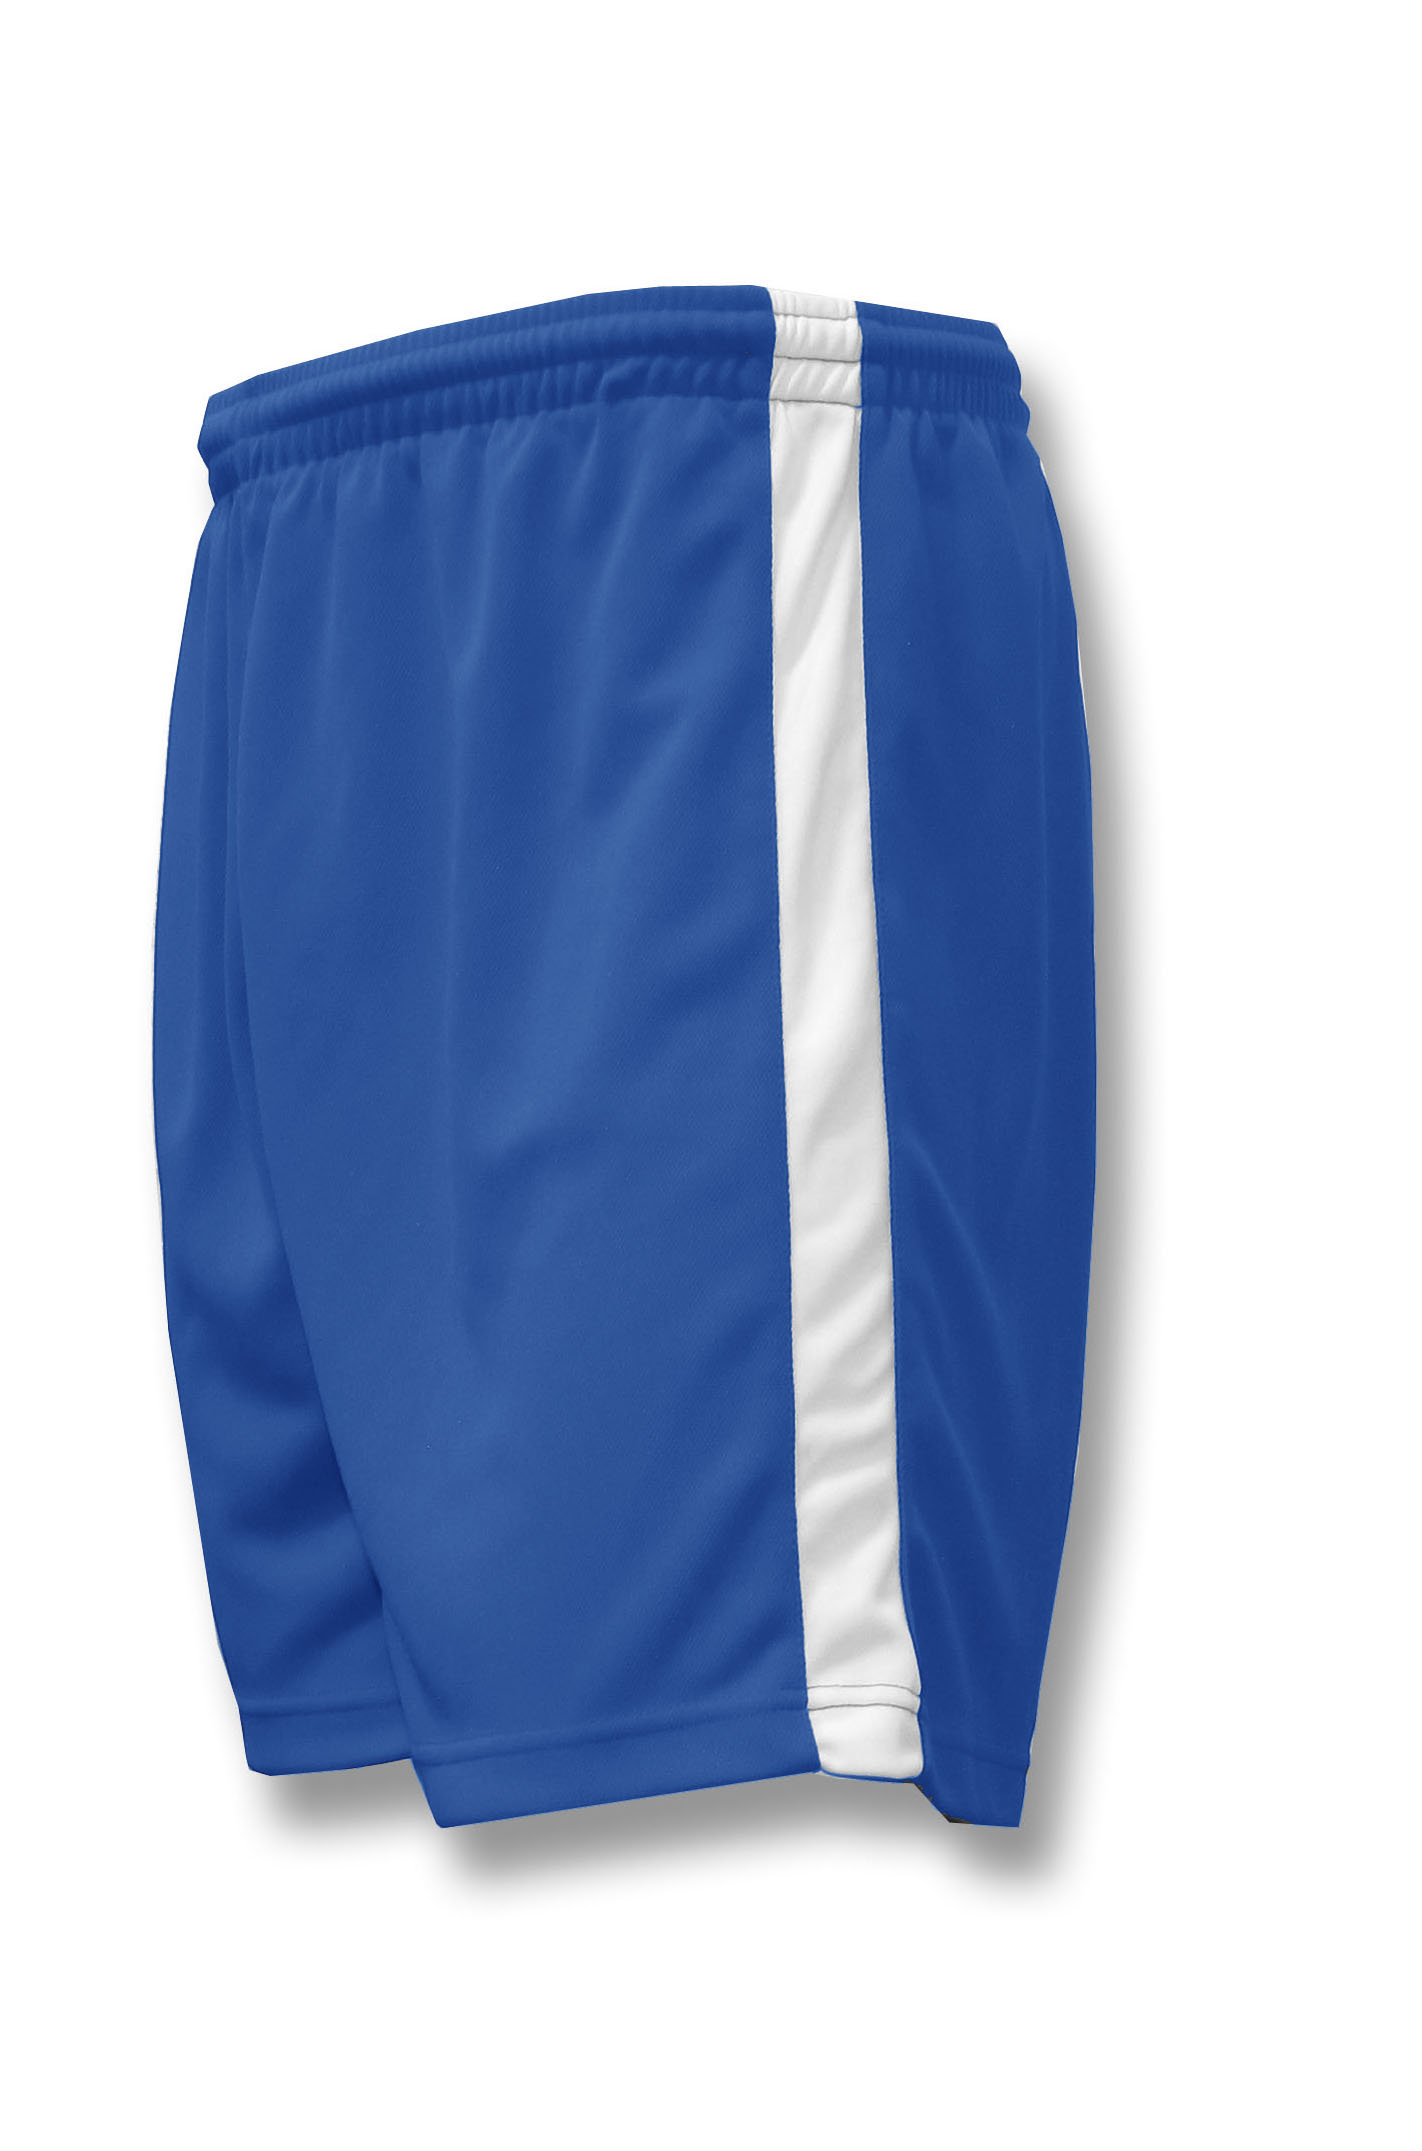 Sweeper / Cobra soccer shorts in royal by Code Four Athletics